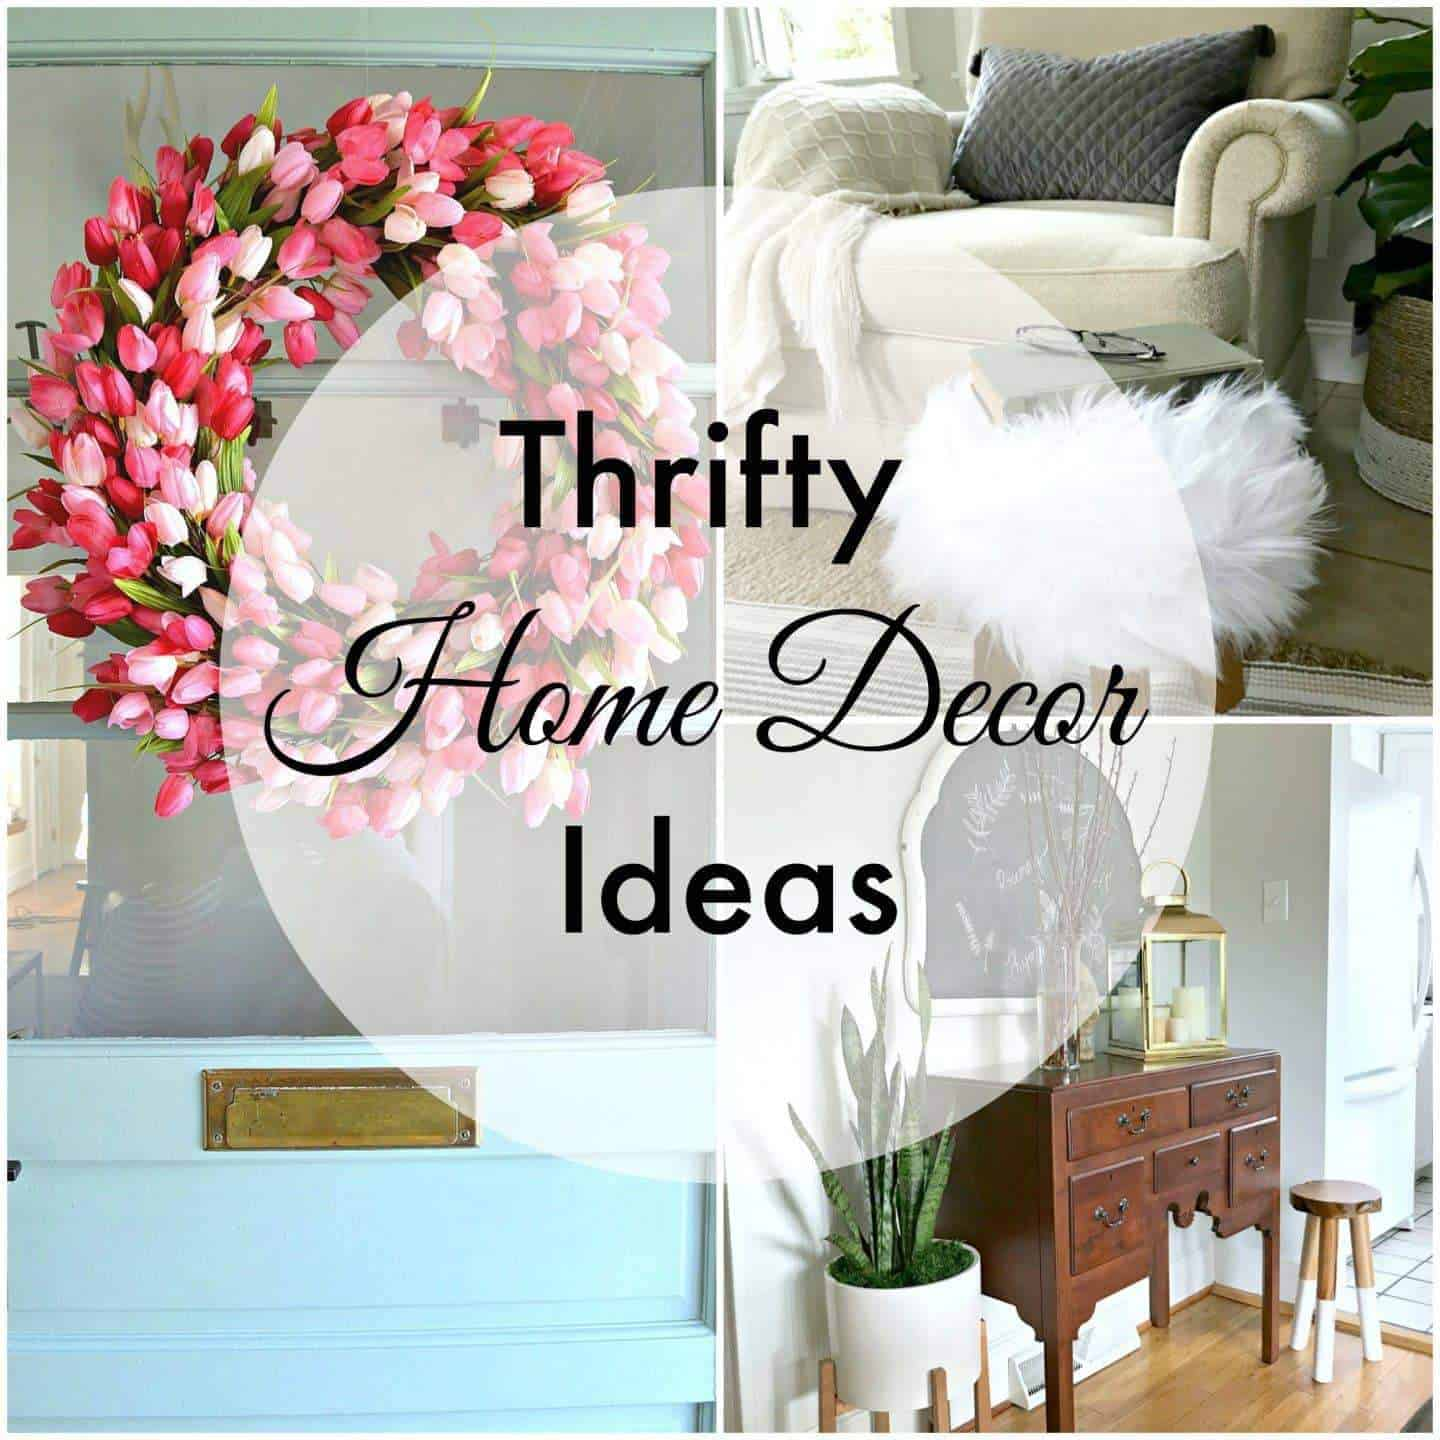 Our Top 5 Thrifty Decor Projects